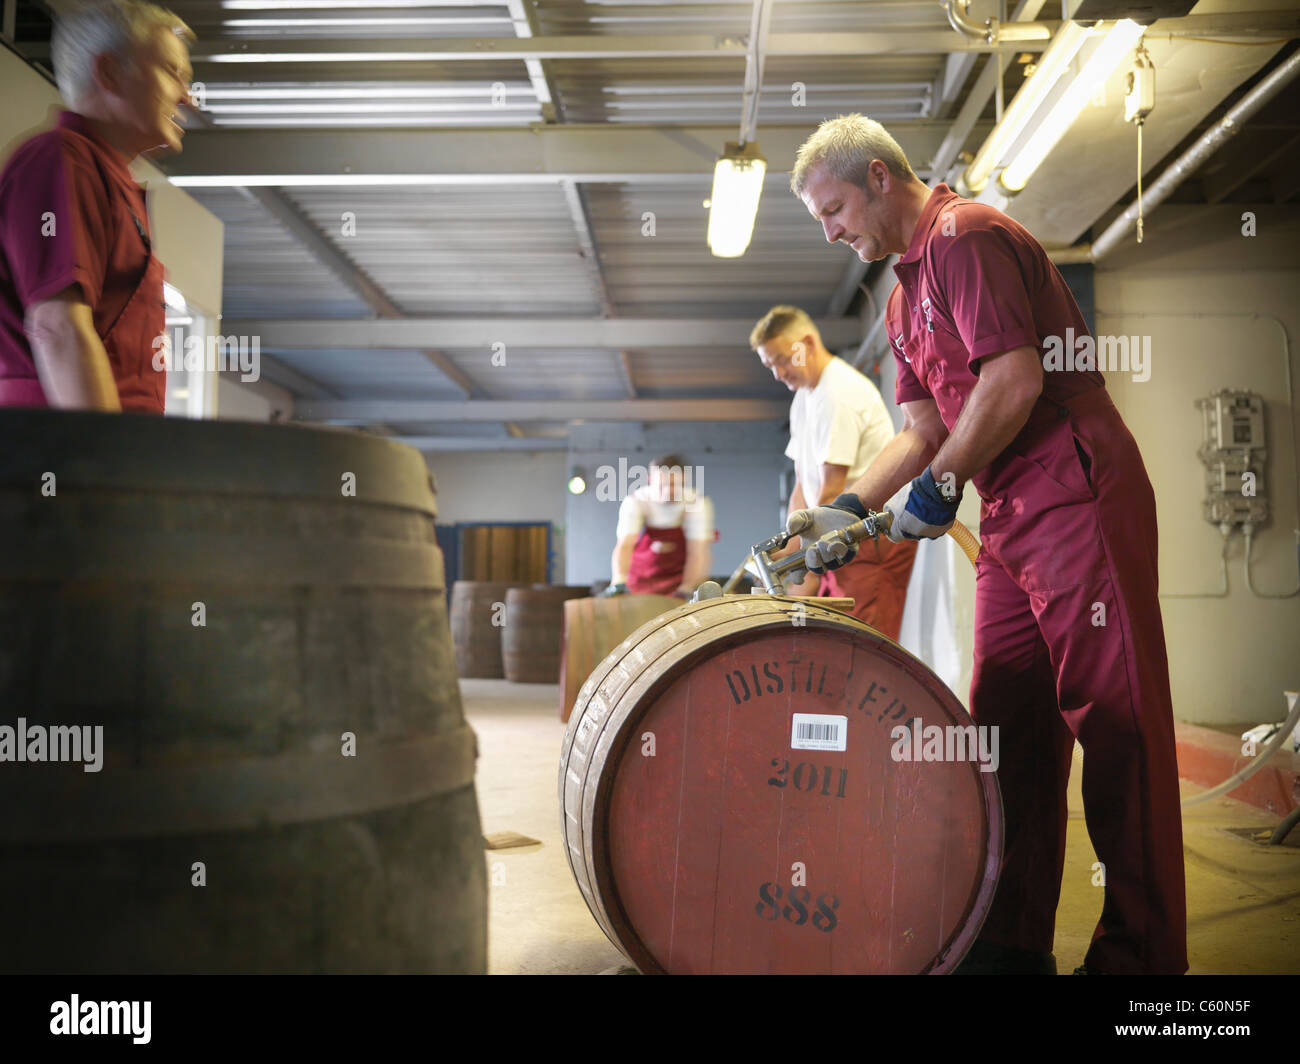 Worker with whisky barrel in distillery - Stock Image